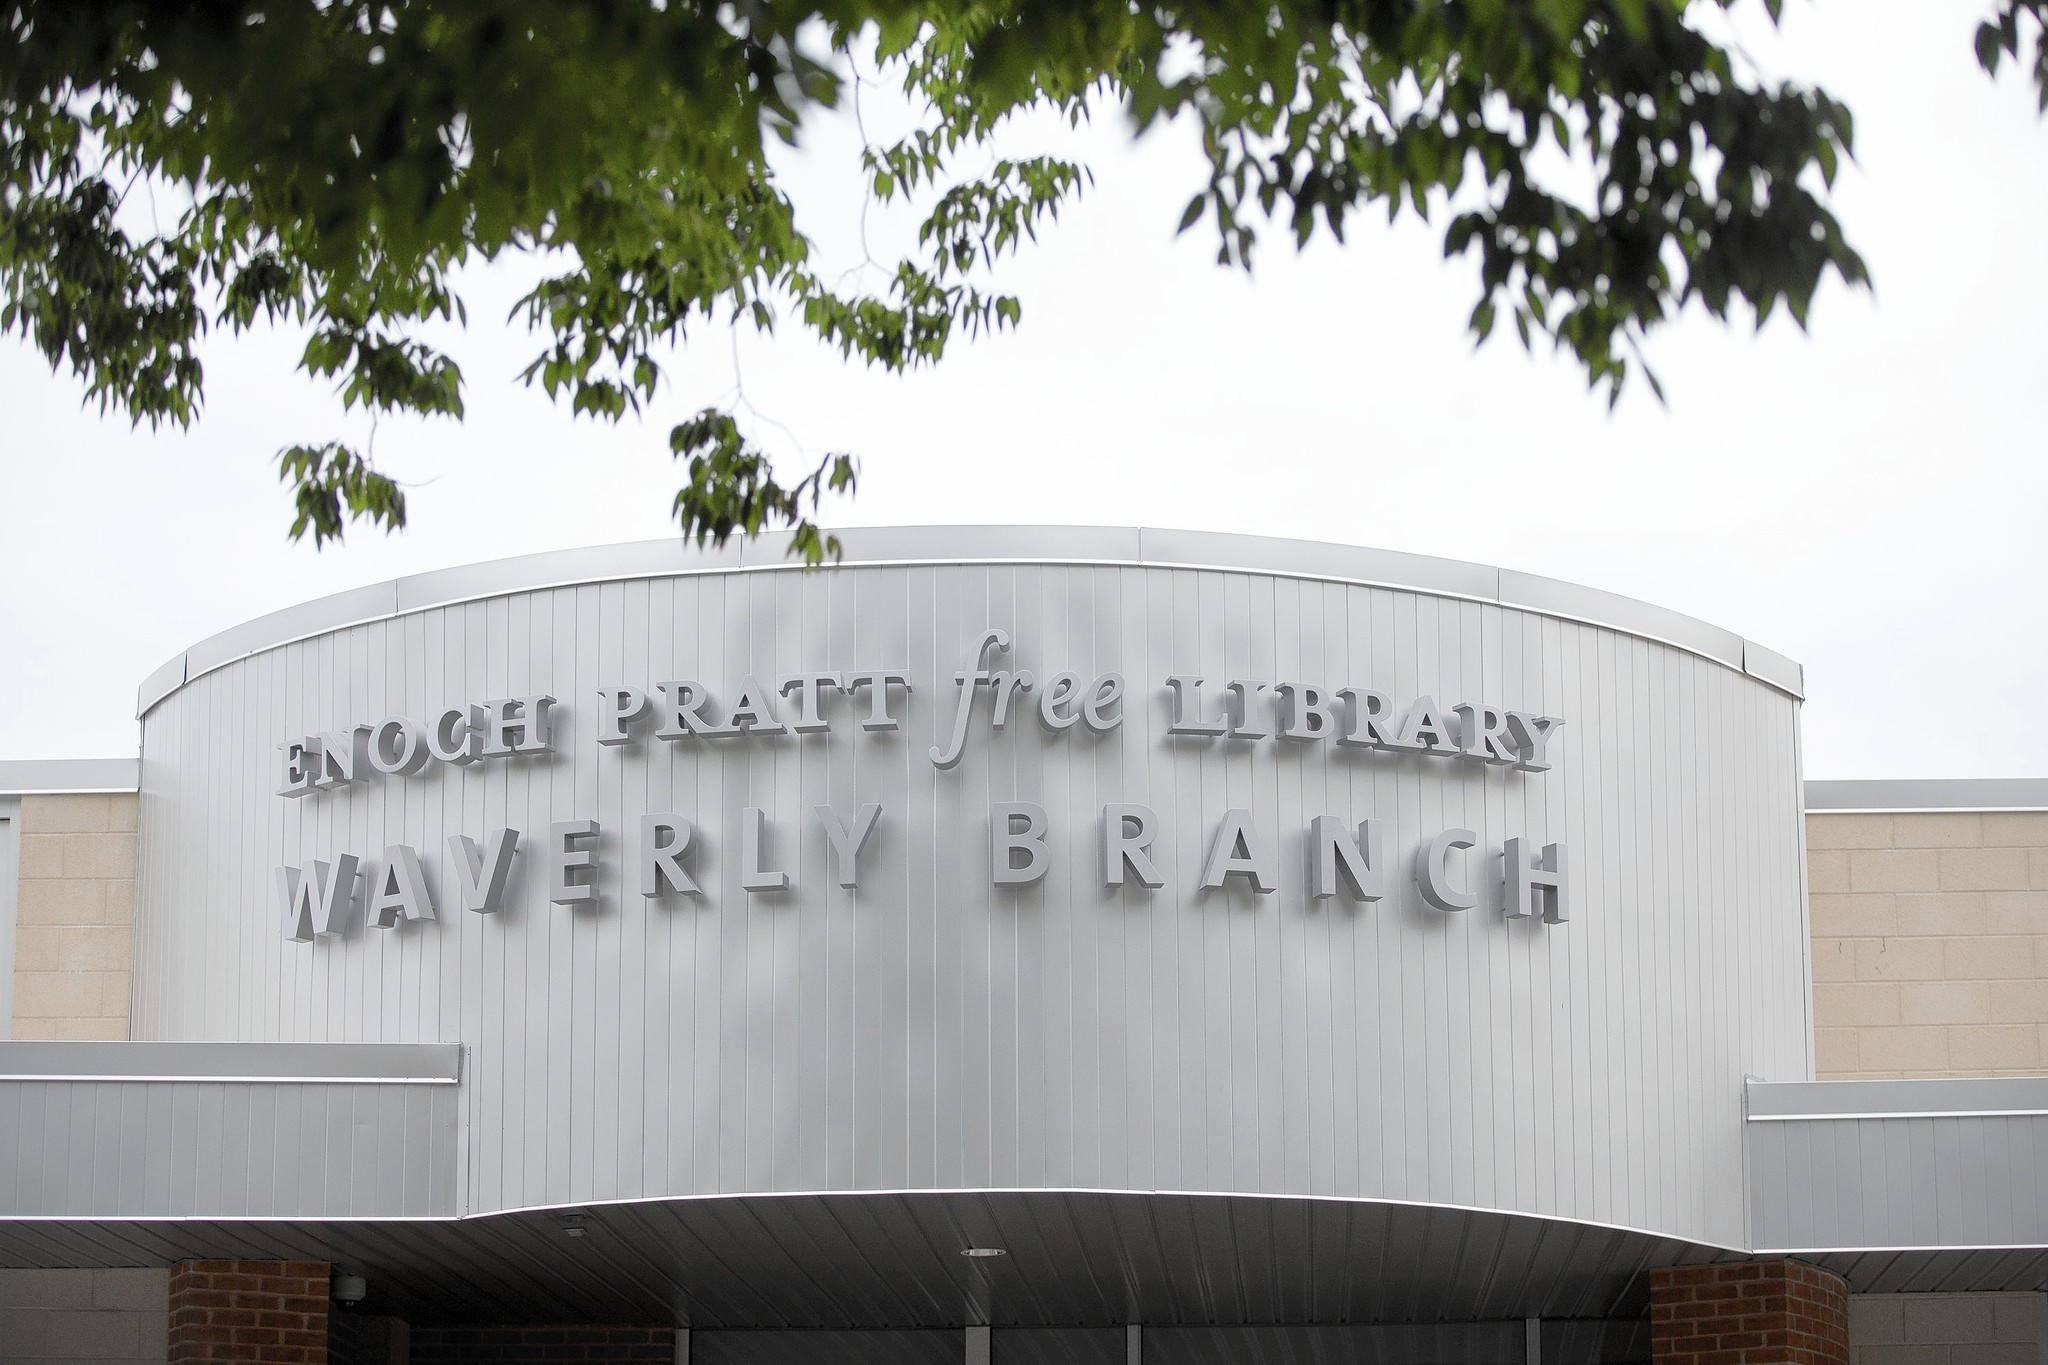 renovated waverly library branch to reopen after endless delays